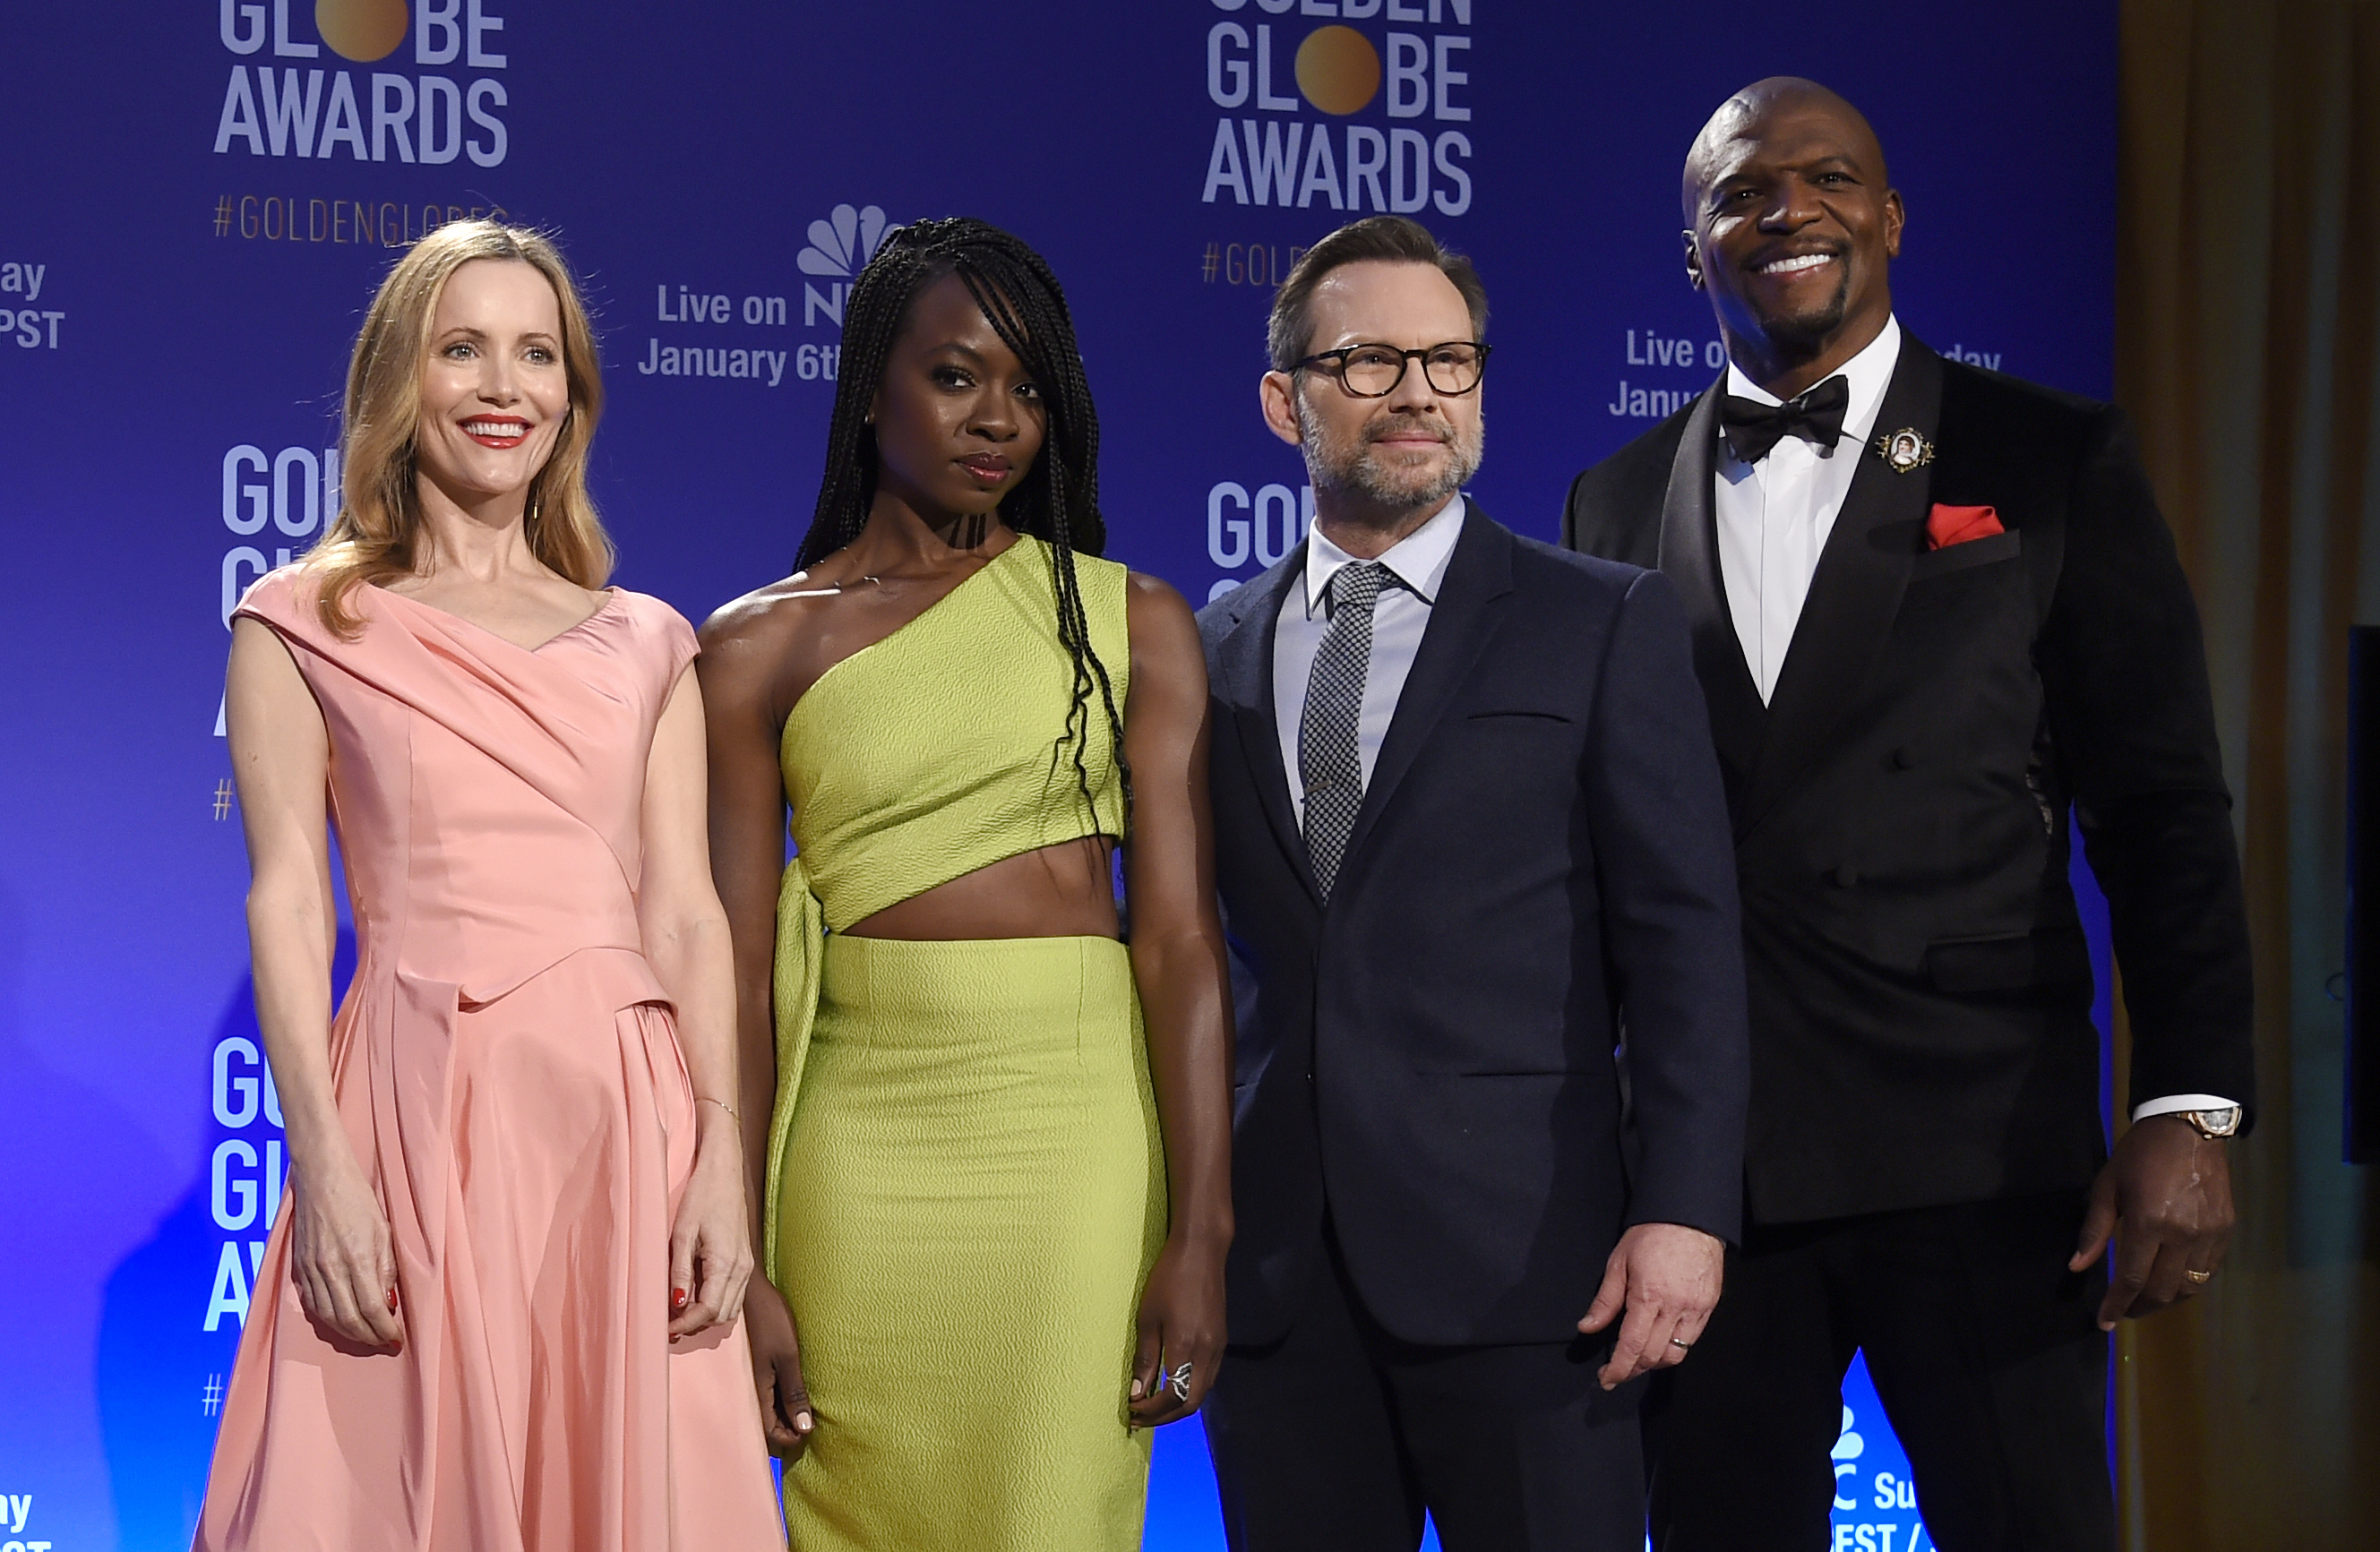 Leslie Mann, from left, Danai Gurira, Christian Slater and Terry Crews pose following the nominations for the 76th Annual Golden Globe Awards at the Beverly Hilton hotel on Thursday, Dec. 6, 2018, in Beverly Hills, Calif. The 76th annual Golden Globe Awards will be held on Sunday, Jan. 6, 2019. (Photo by Chris Pizzello/Invision/AP).